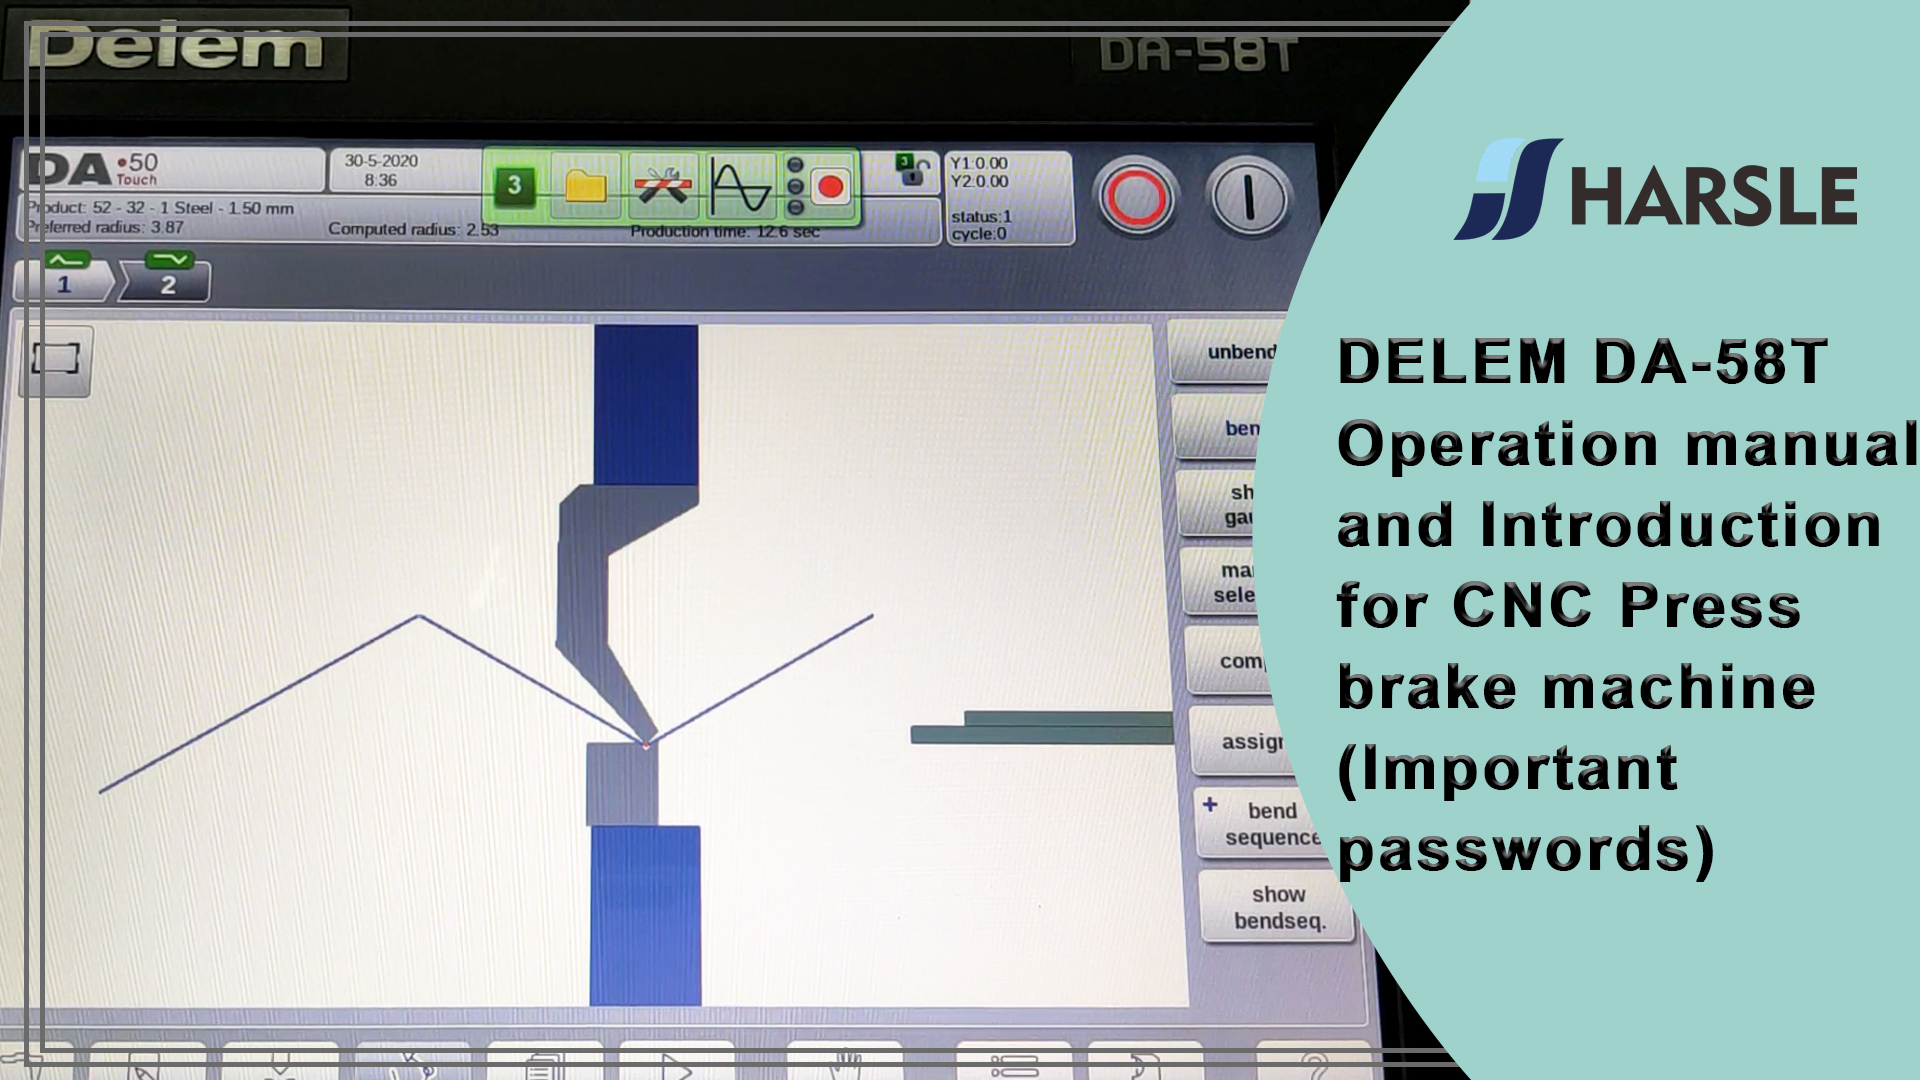 DELEM DA-58T Operation manual and Introduction for CNC Press brake machine (Important passwords)